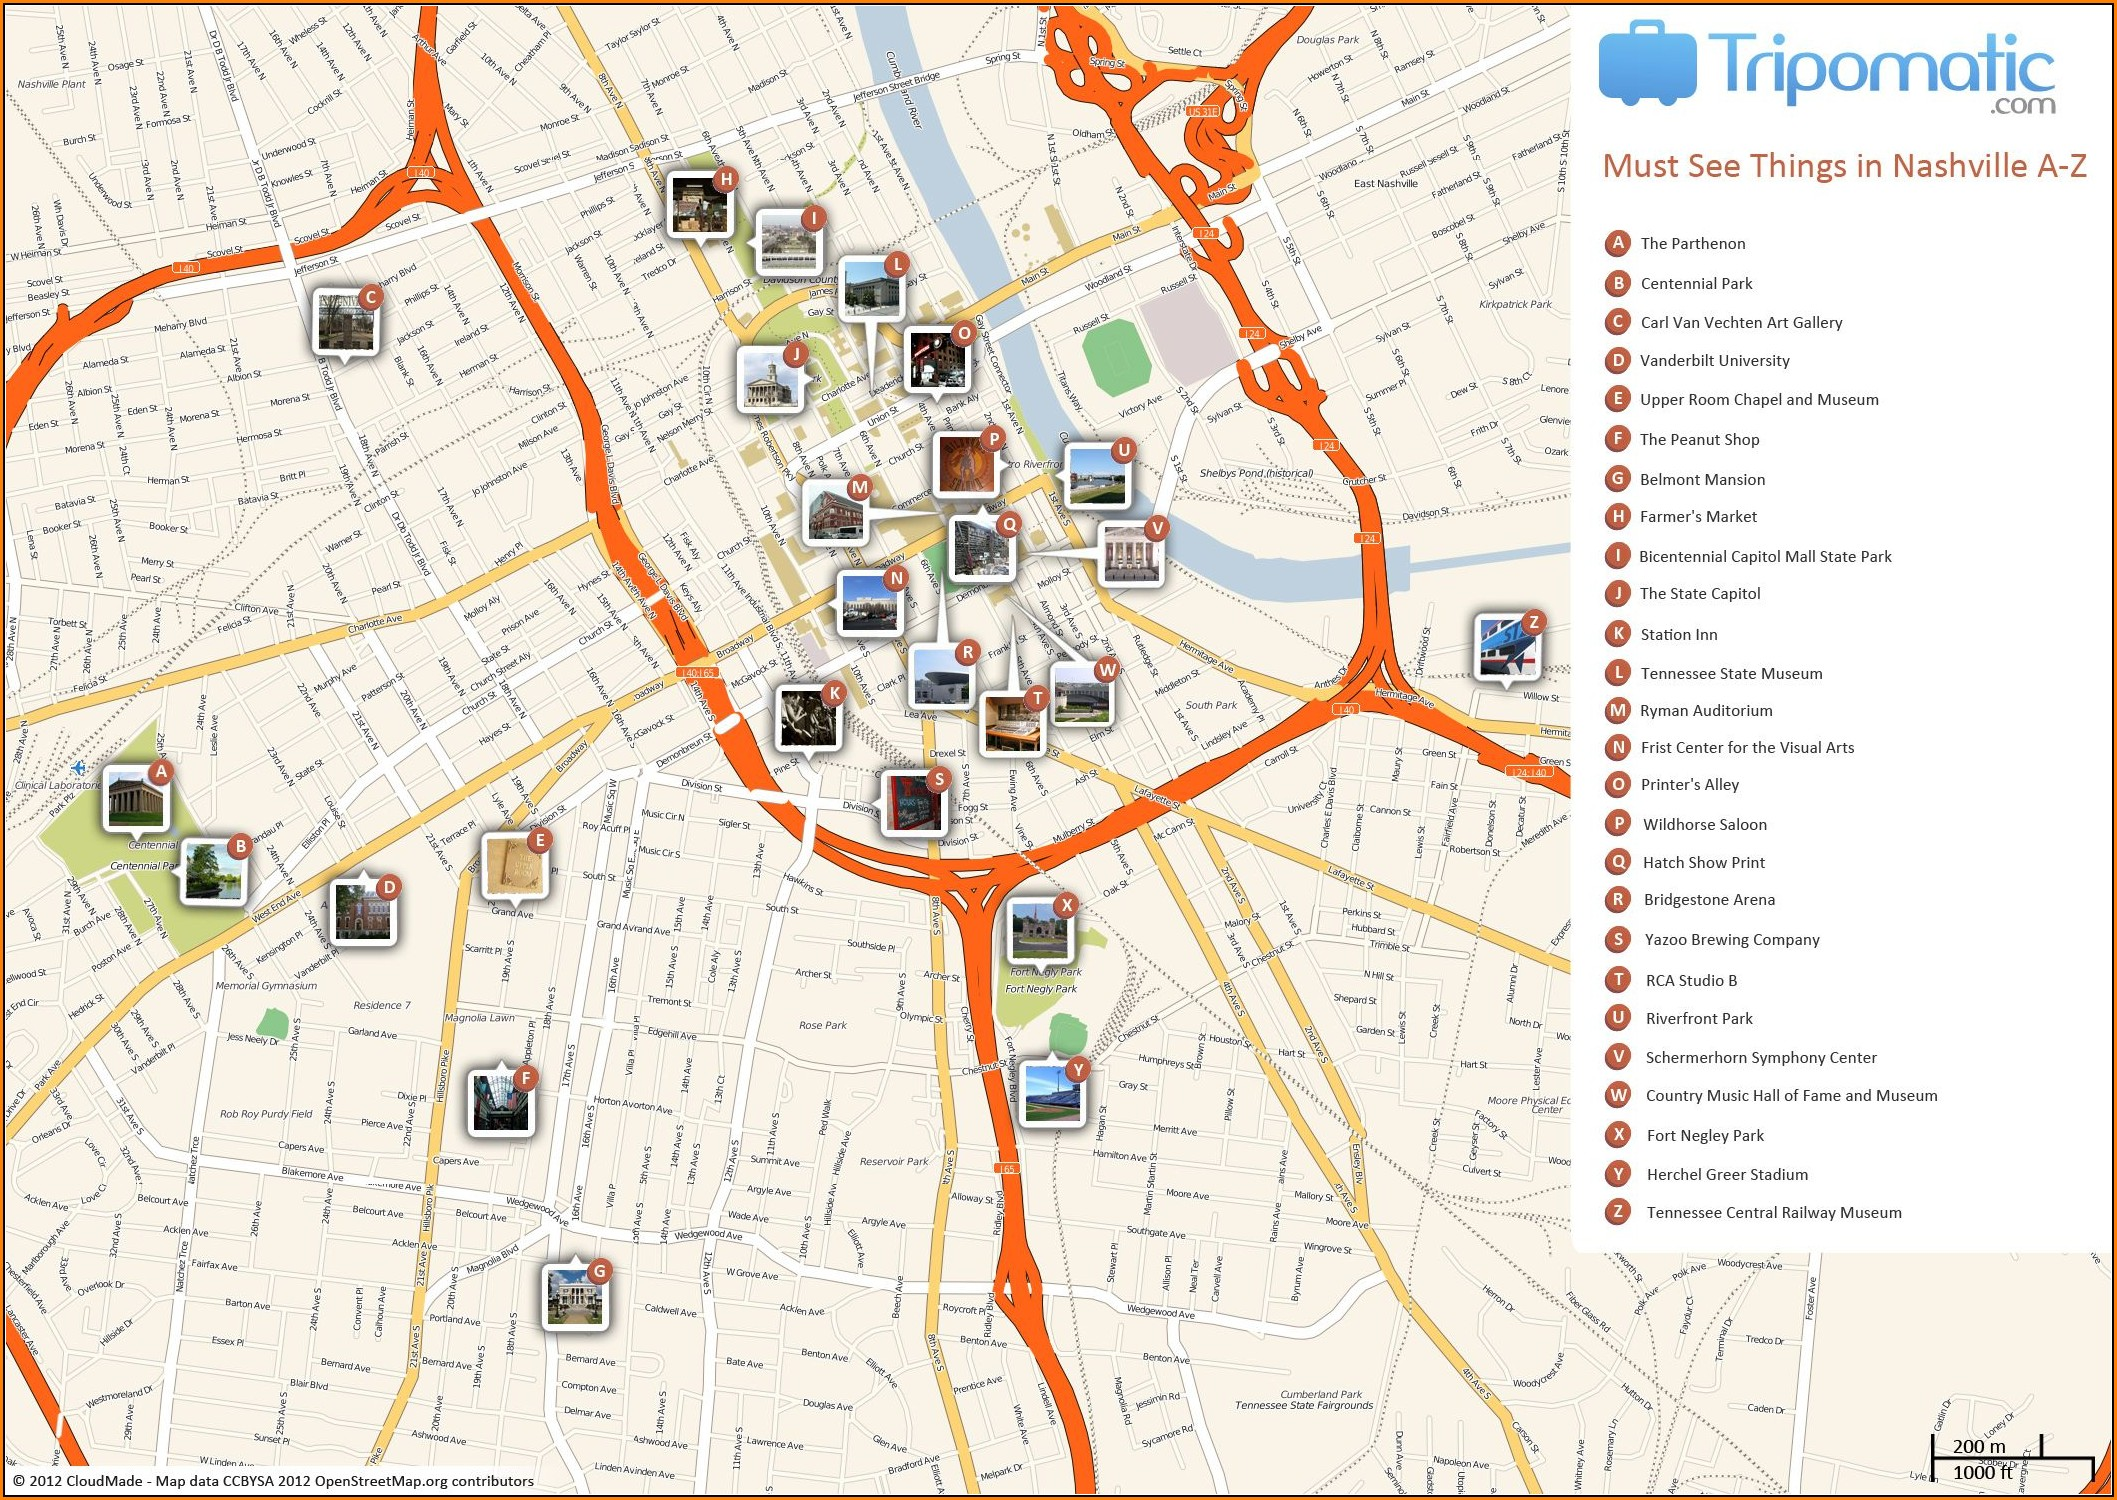 Printable Map Of Nashville Attractions